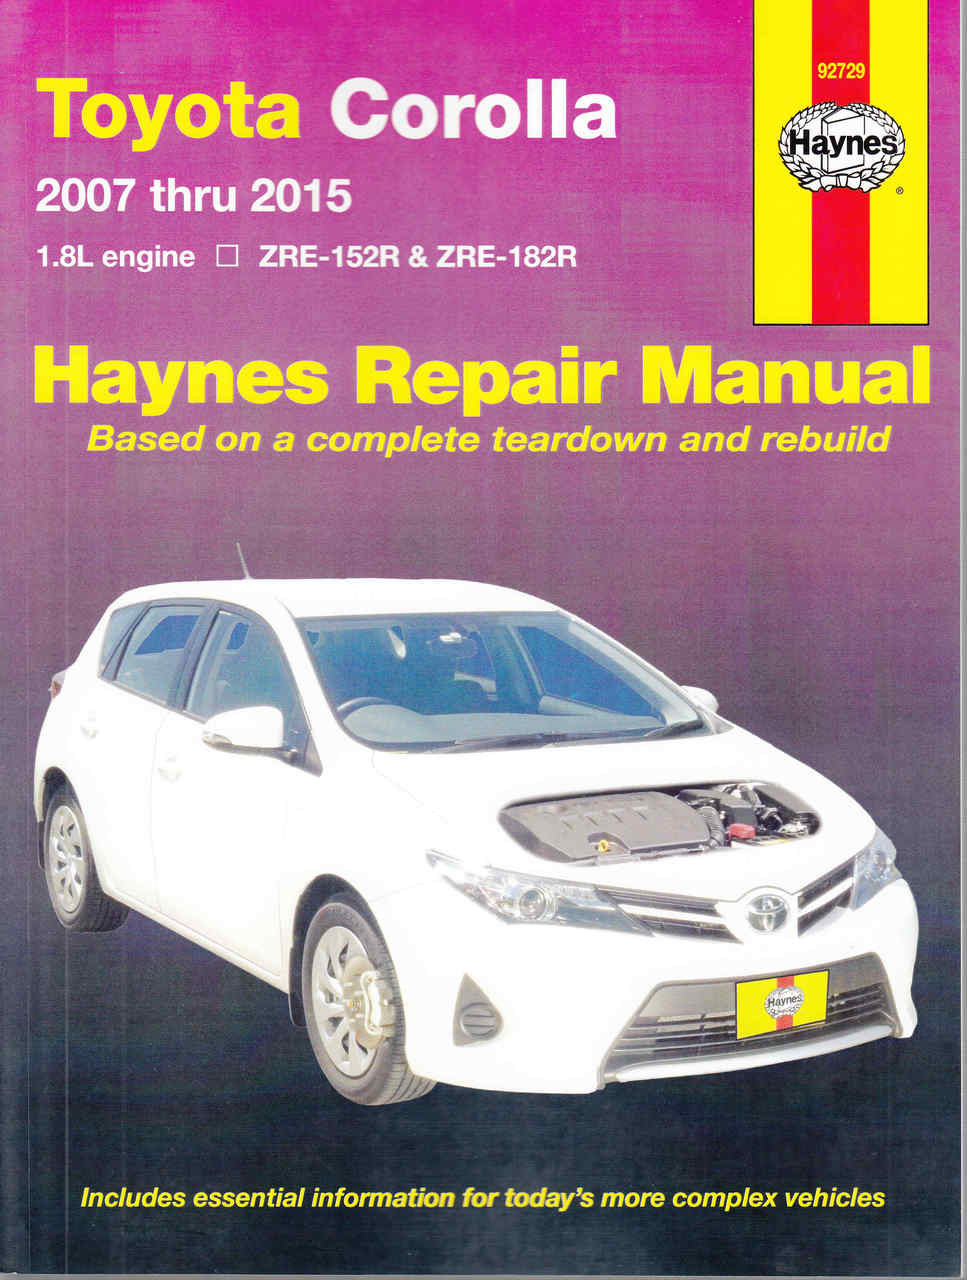 Toyota Corolla 1.8 litre engine ZRE-152R & ZRE-182R 2007 - 2015 Workshop ...